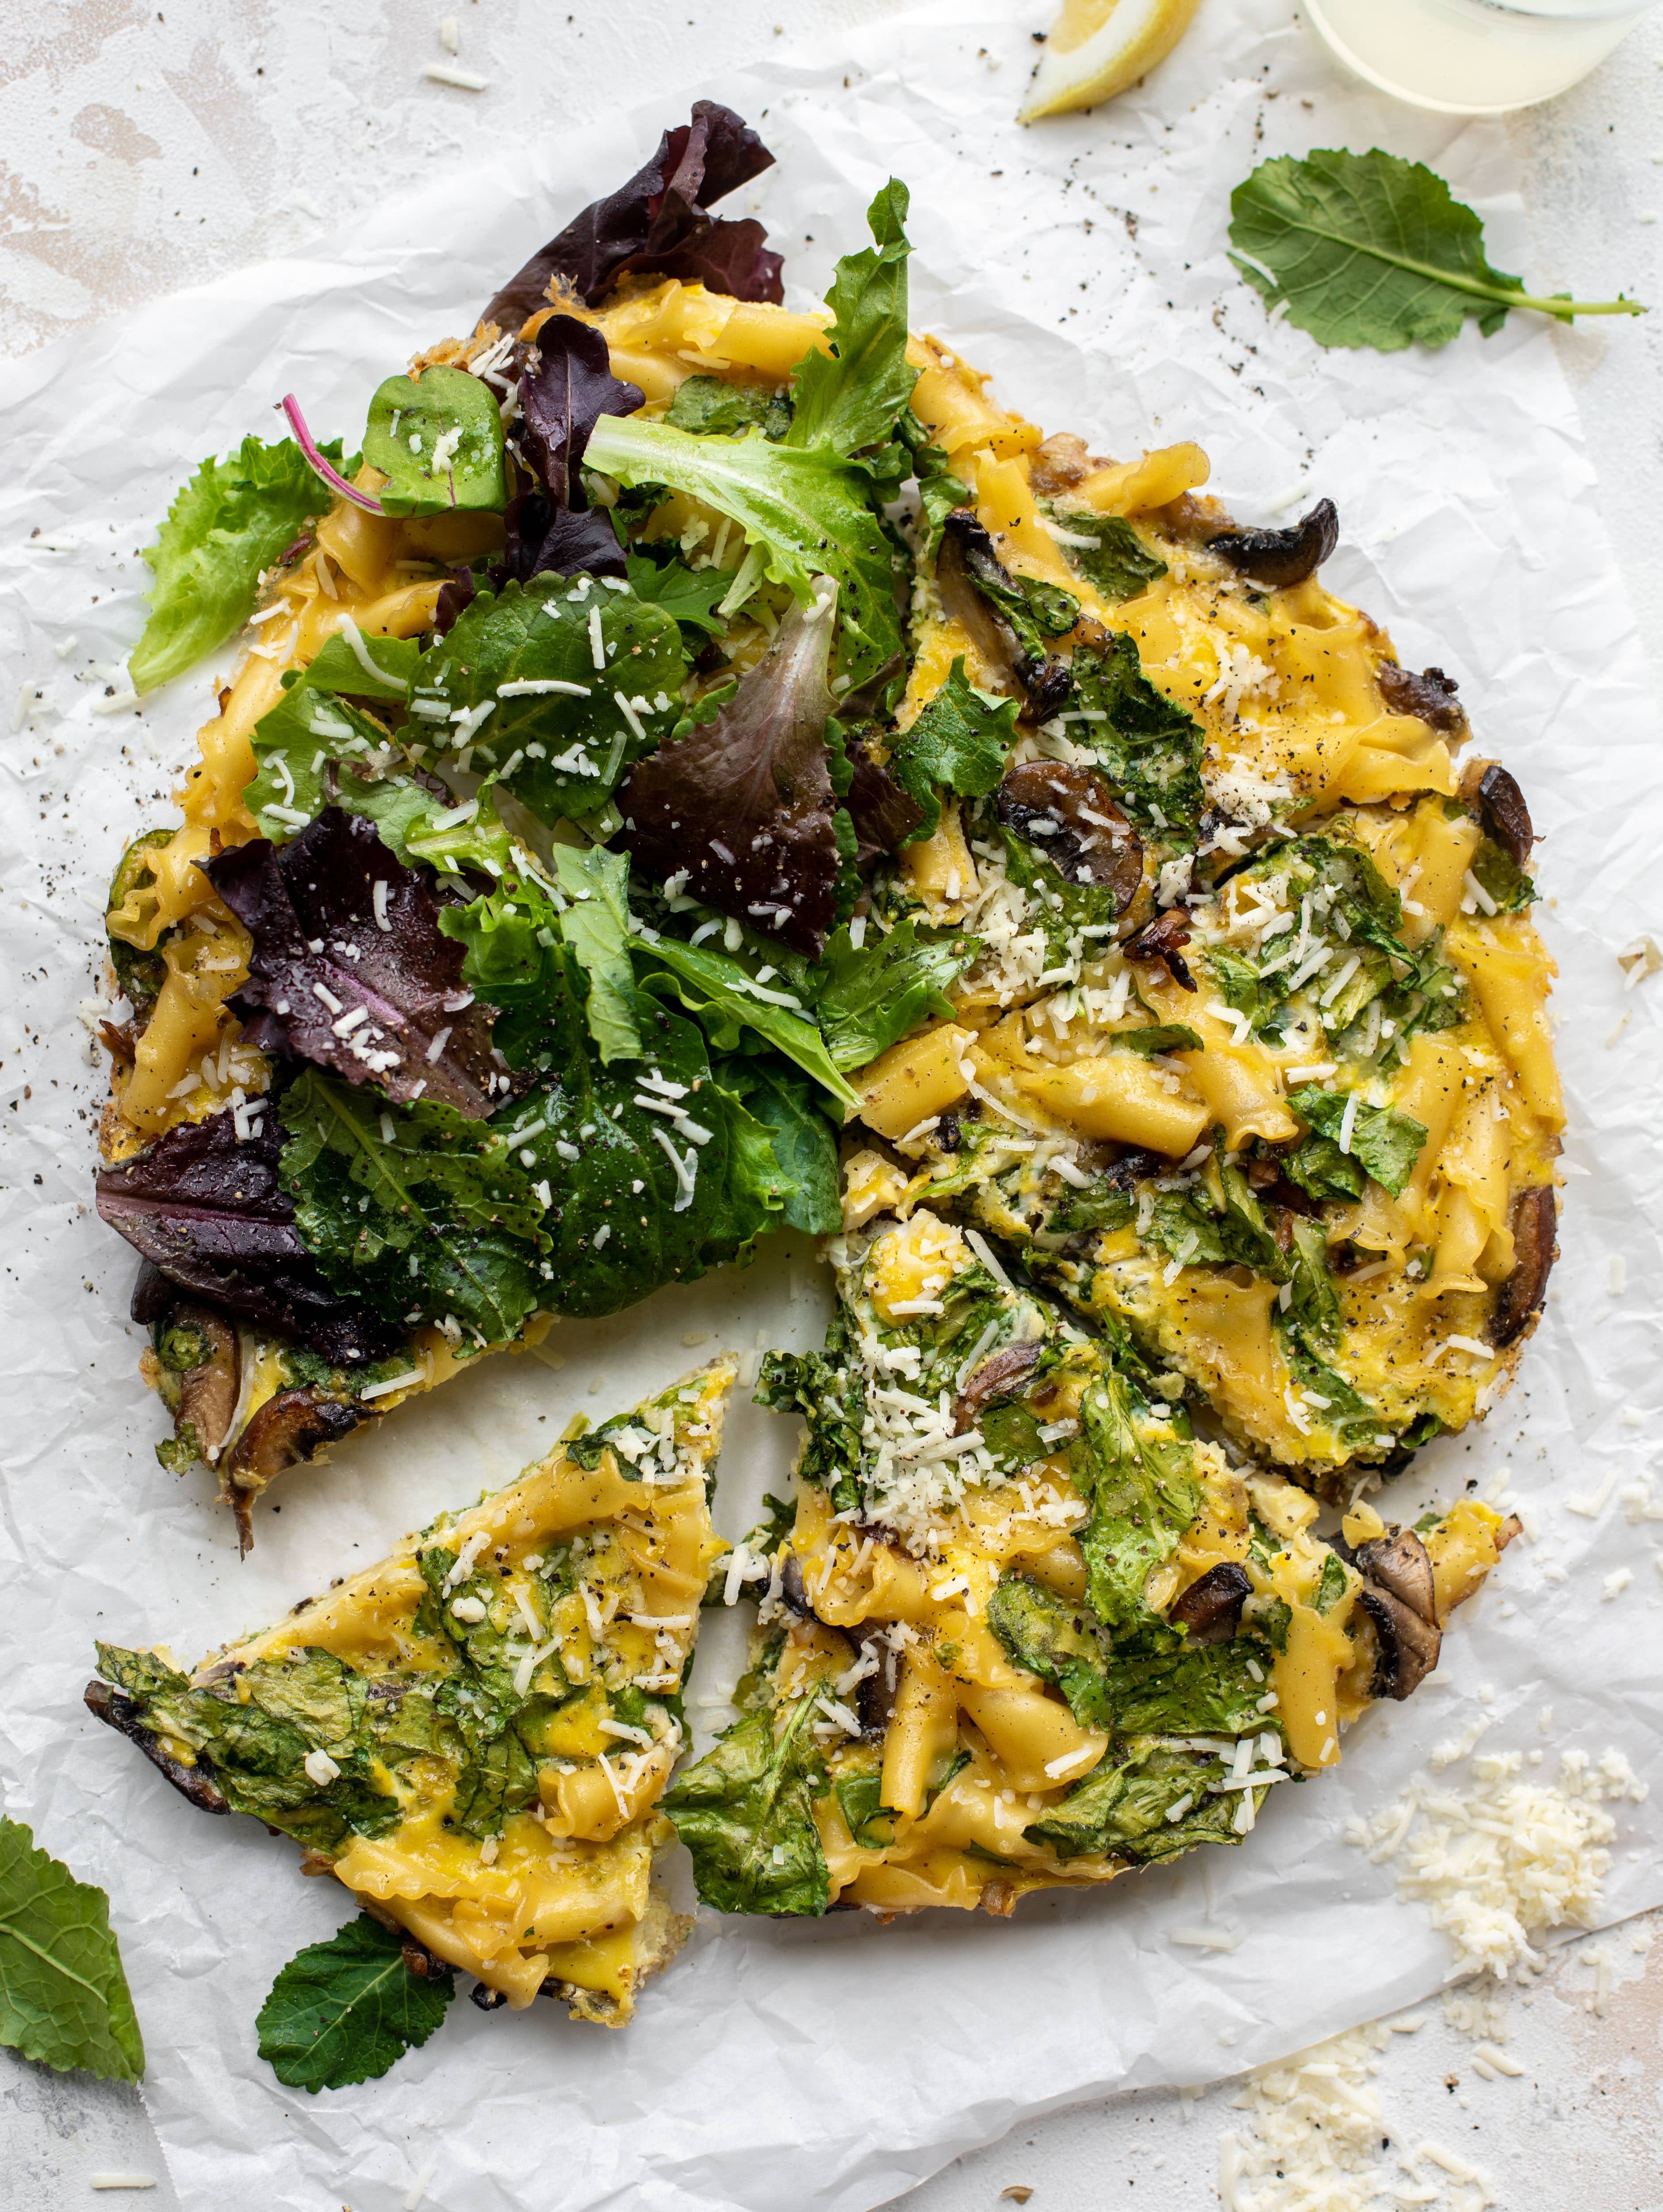 This super easy pasta frittata uses leftover ingredients and can be prepped ahead of time. Leftovers are great and it's satisfying and delicious!